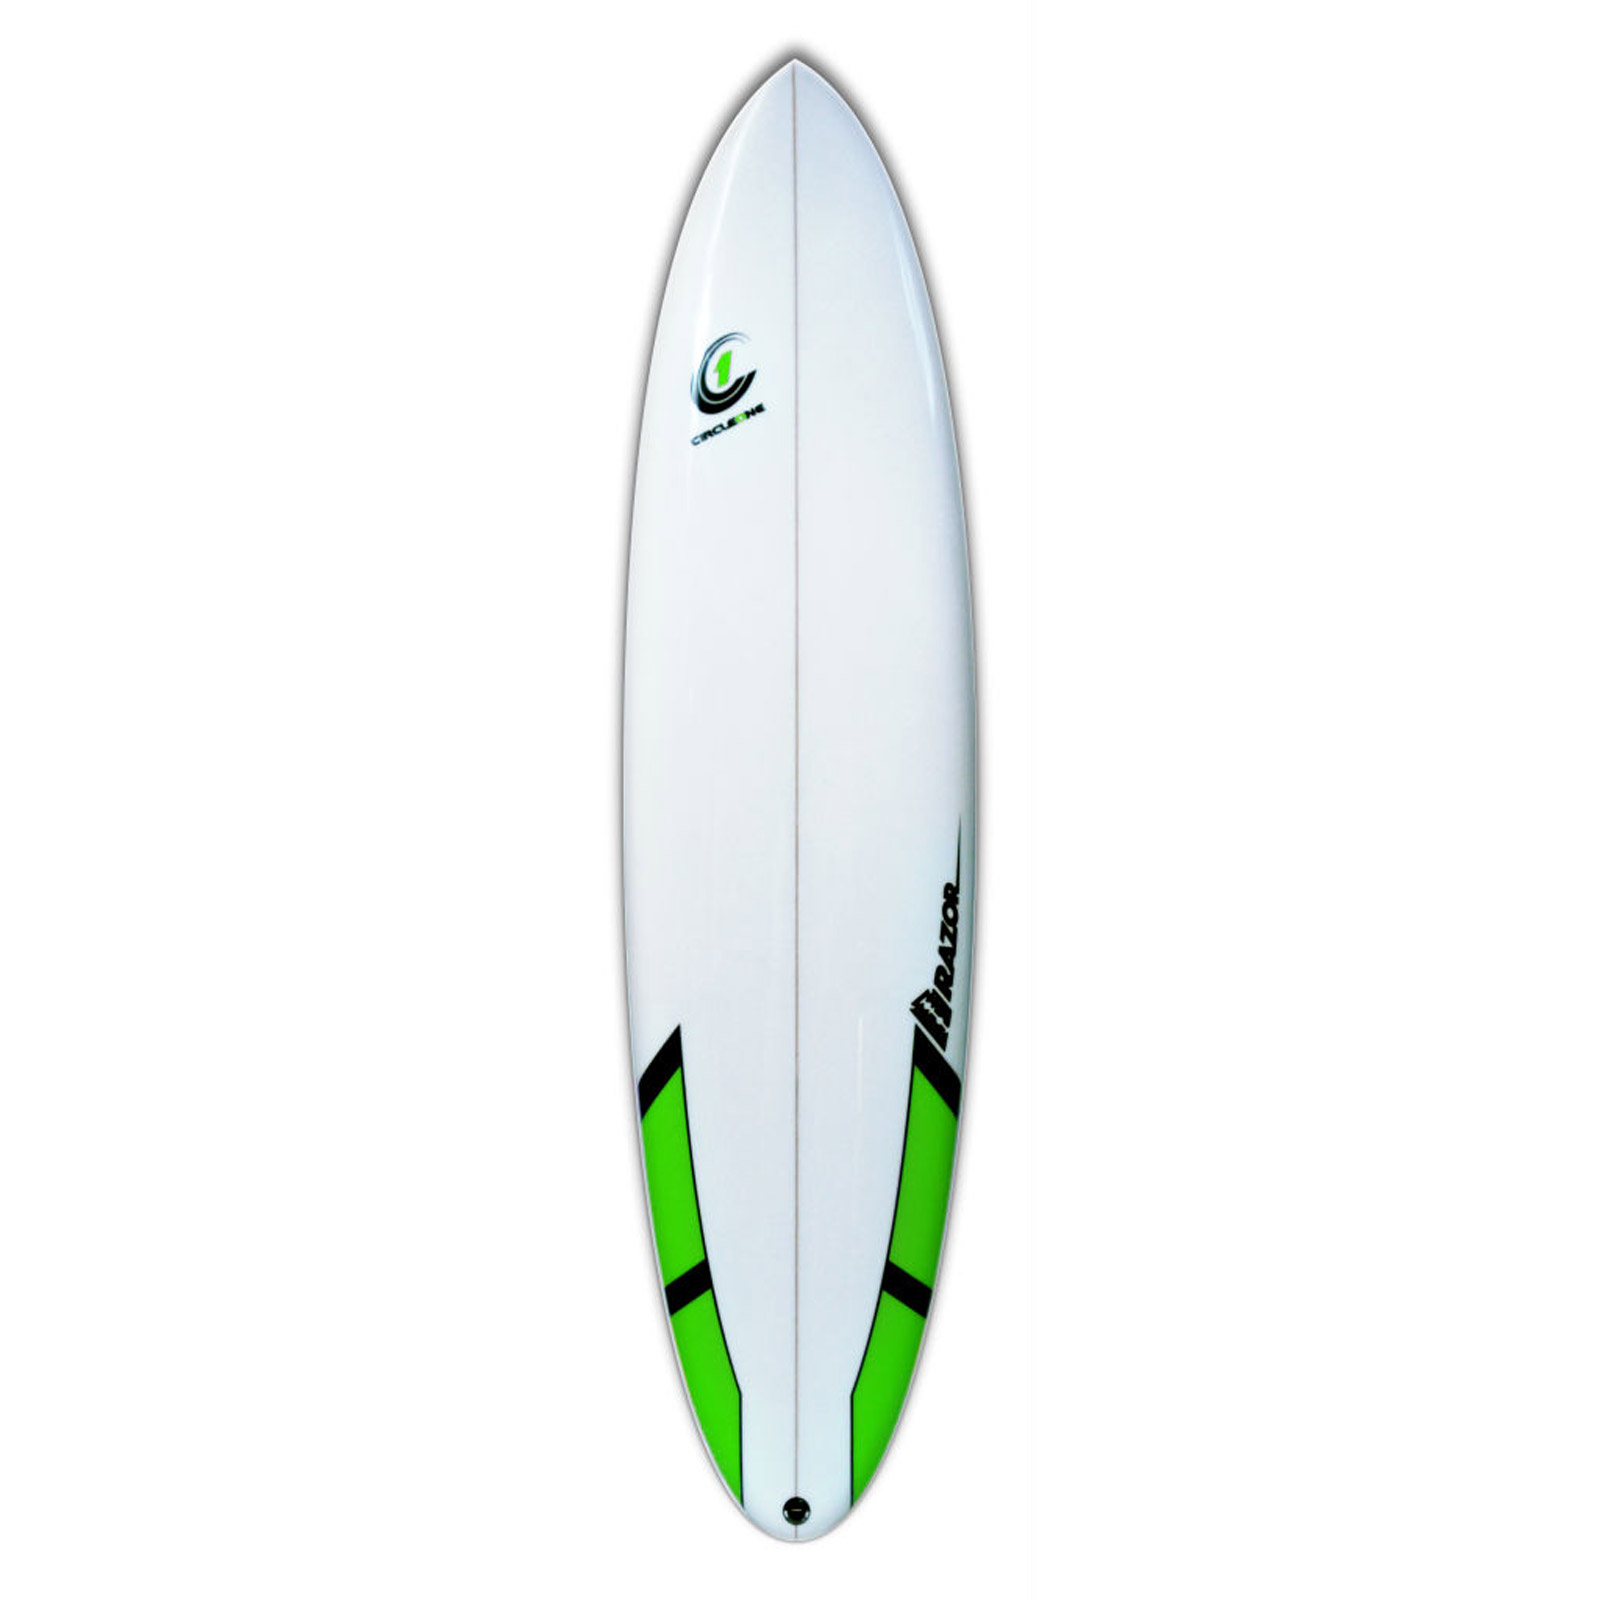 7ft 6inch Razor Mini Mal Surfboard - Round Tail - Gloss Finish